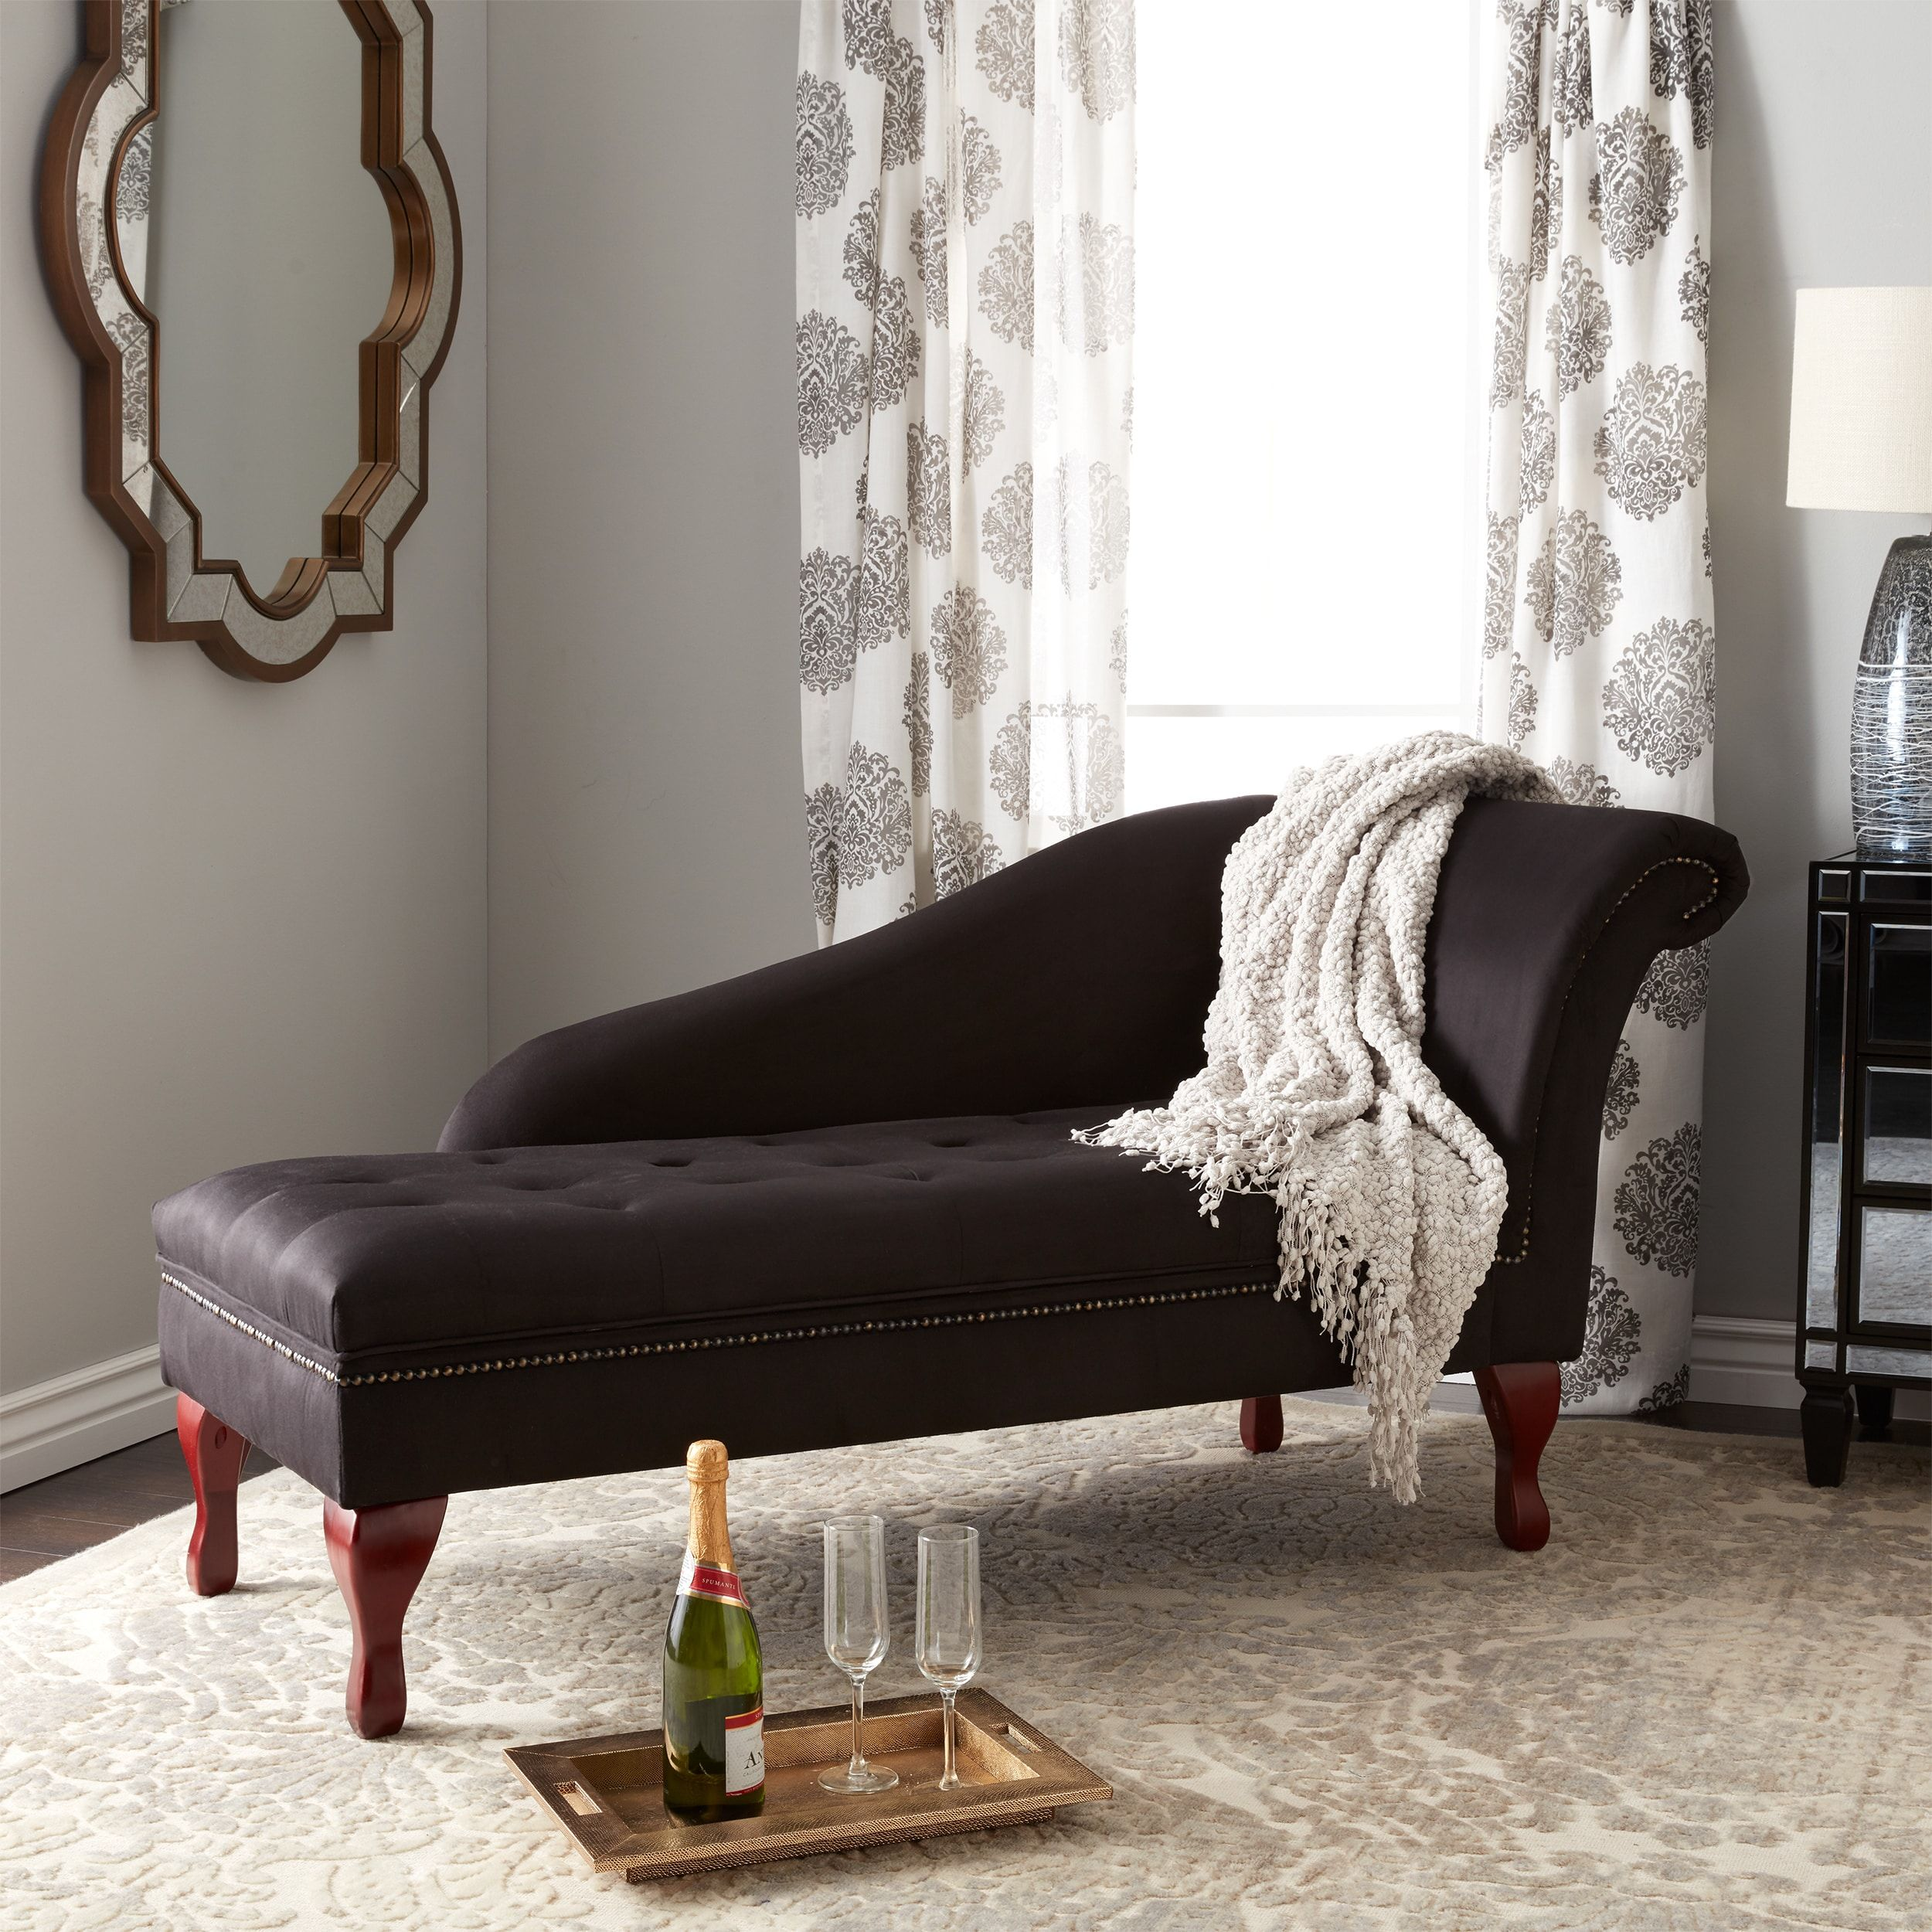 best deals on living room furniture small fireplaces simple black storage chaise lounge overstock com shopping the chairs